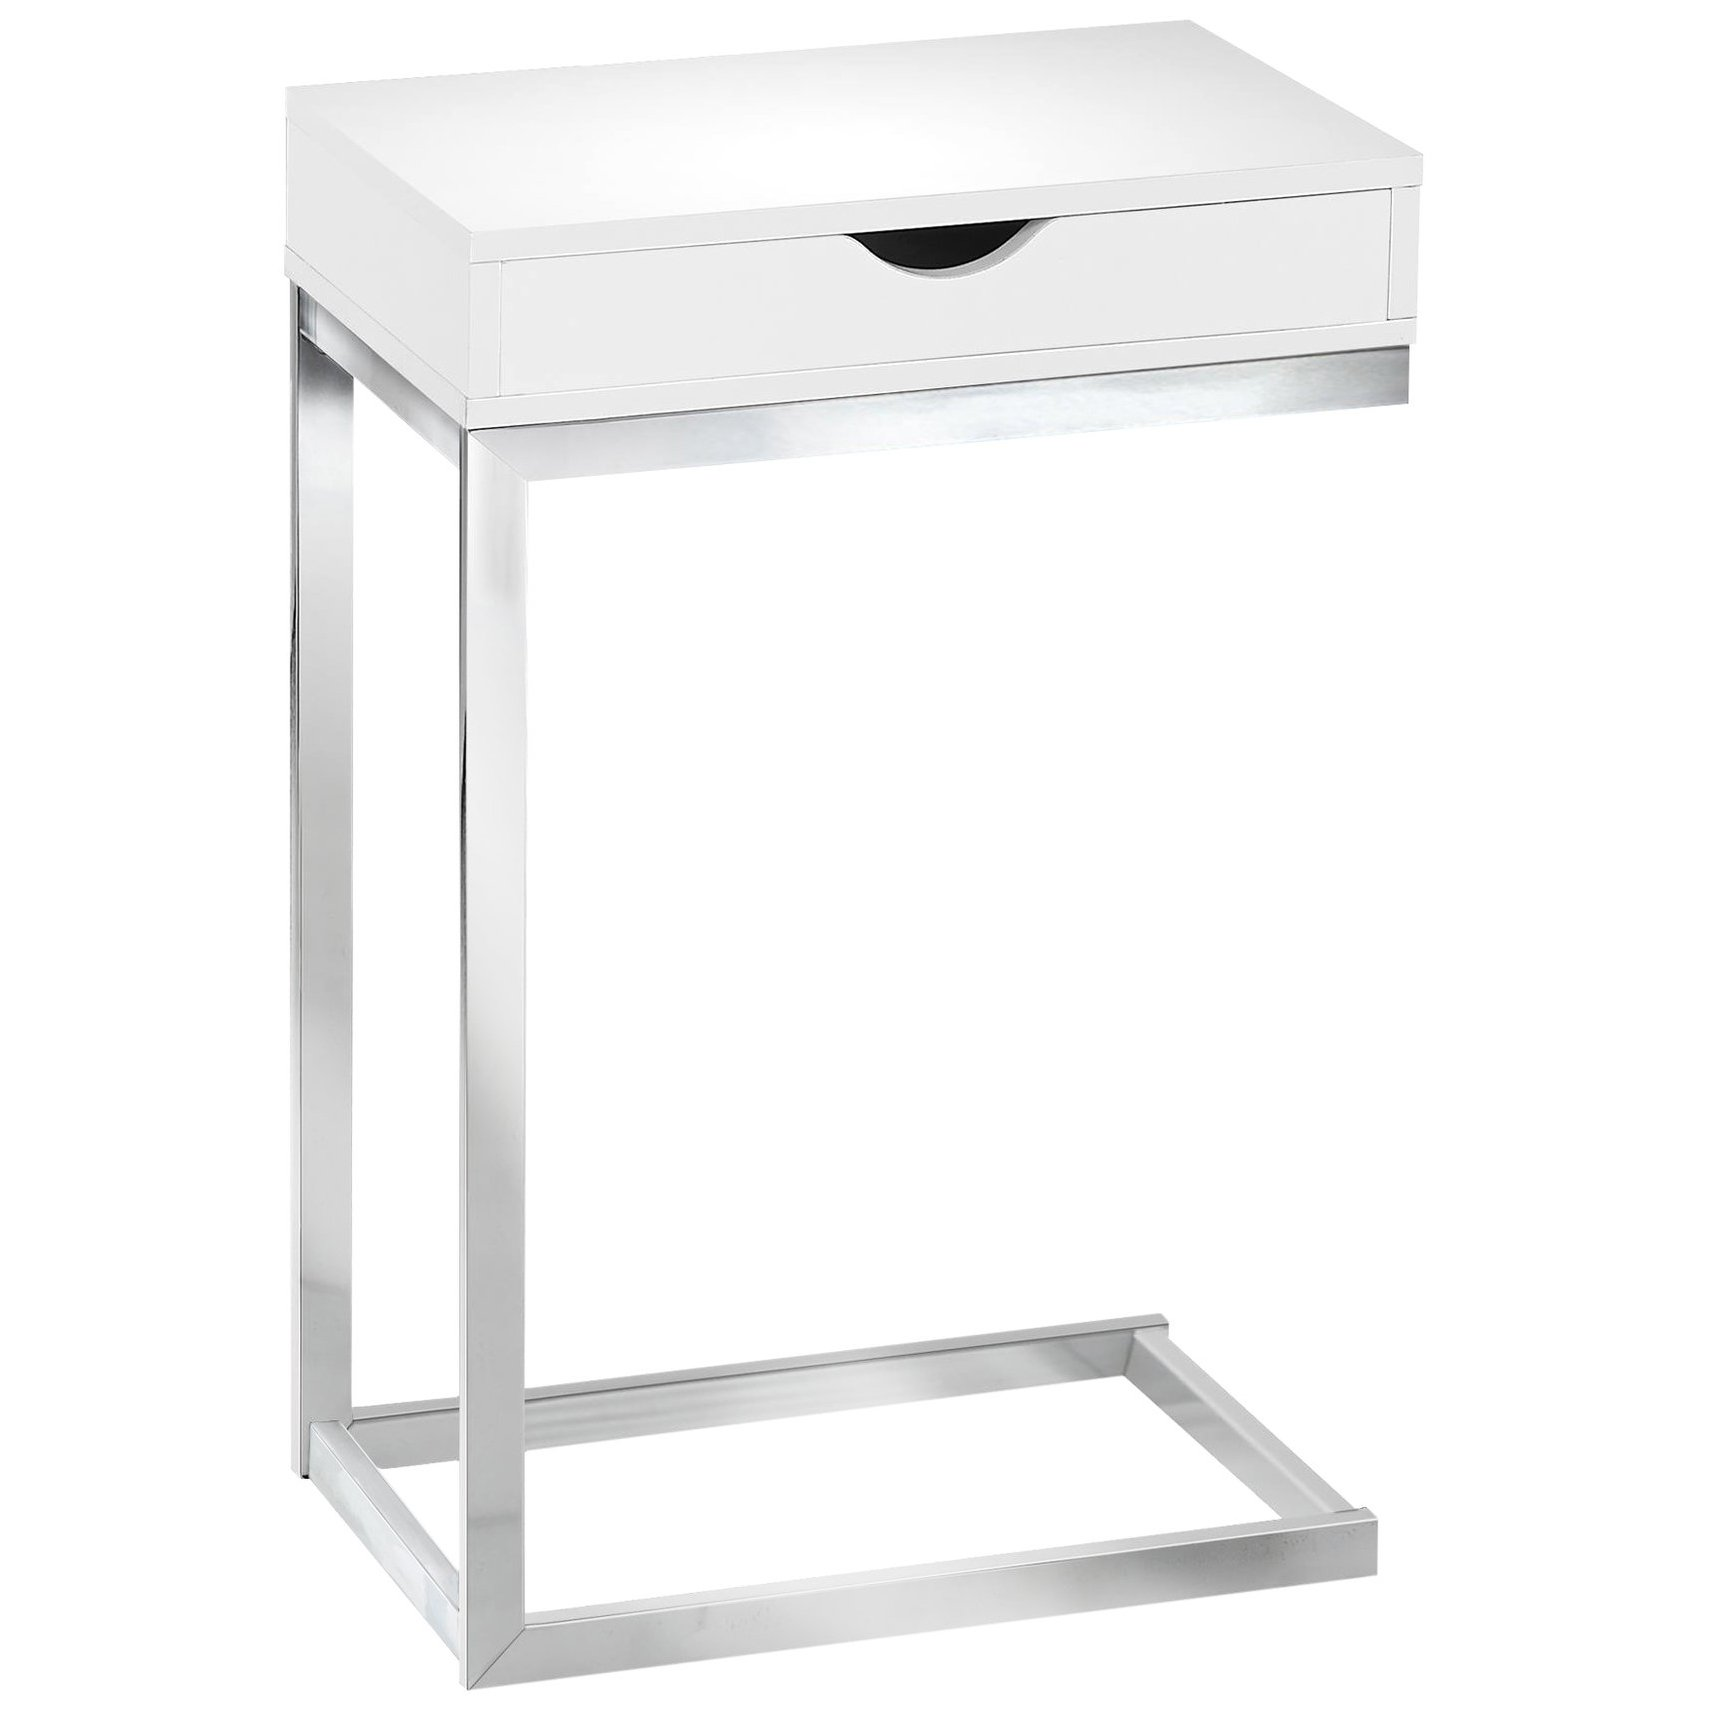 accent table with drawer winsome daniel black finish monarch specialties chrome metal glossy white outdoor cover narrow bedside drawers top legs counter height console wicker wood